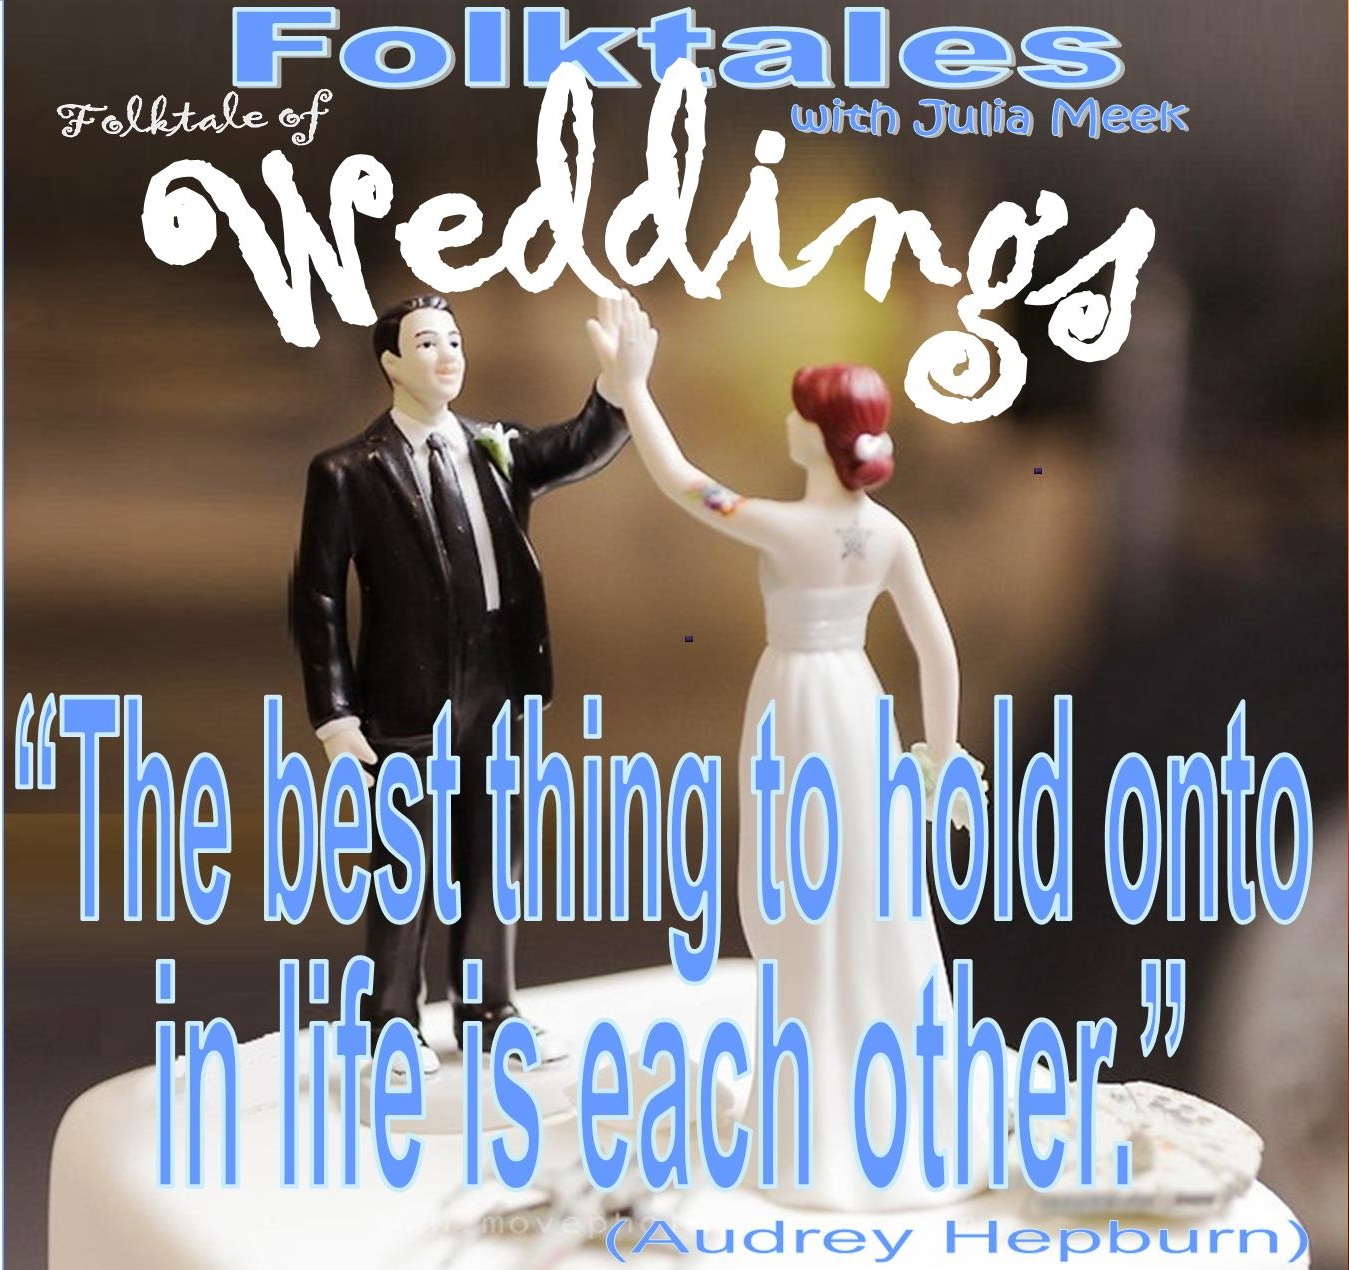 Ft_weekly-fb___prx_weddings_verse_small